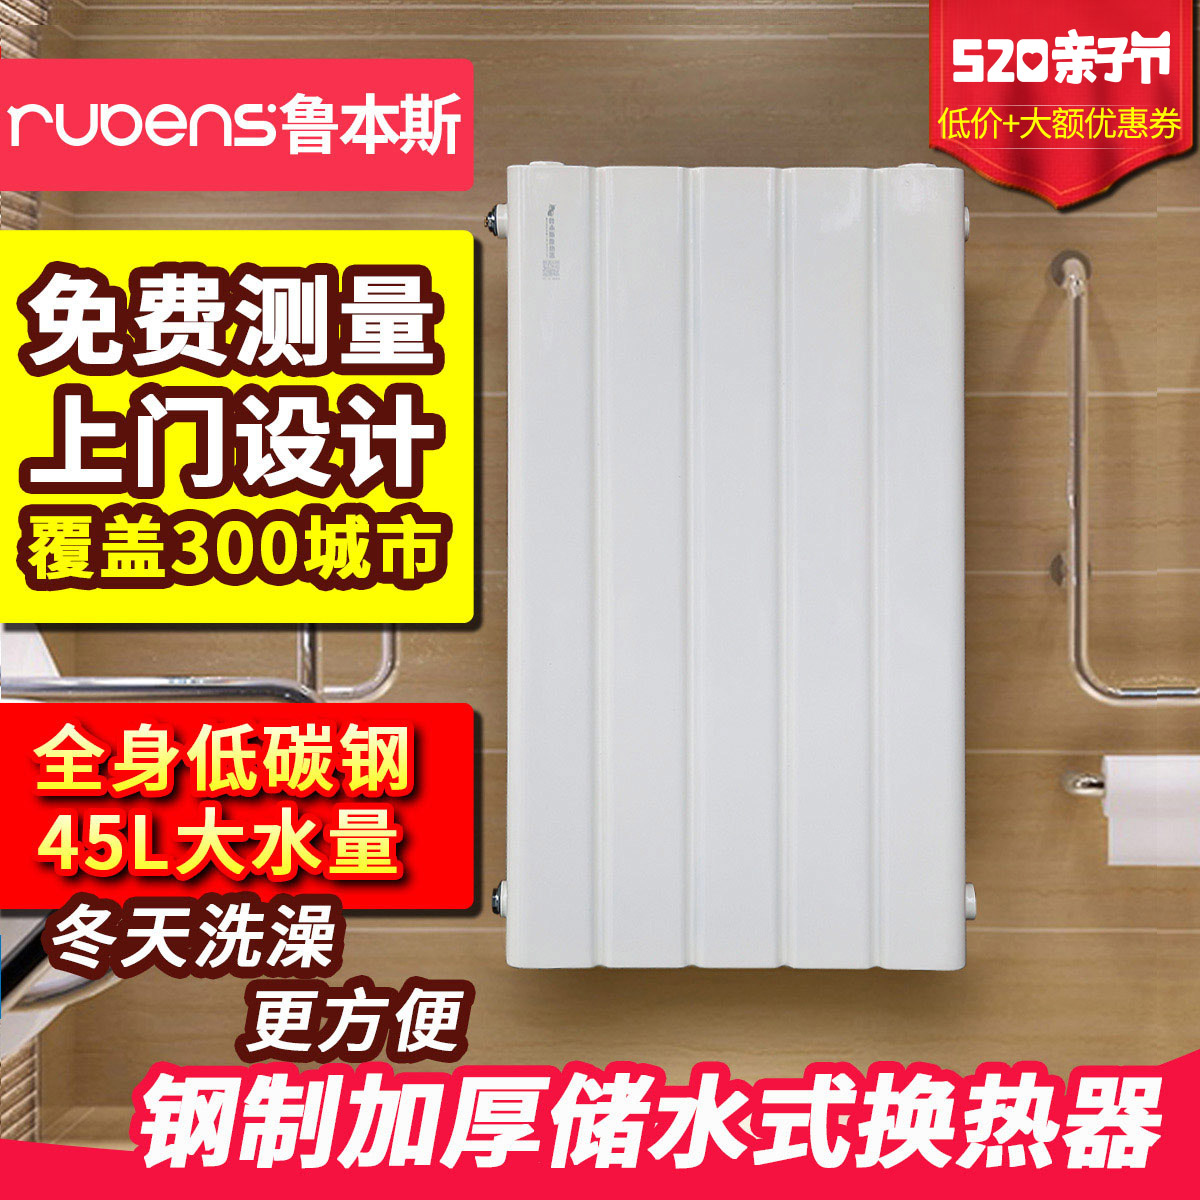 Rubens radiator heat exchanger over water hot home plumbing small back 篓 central heating decorative bathroom